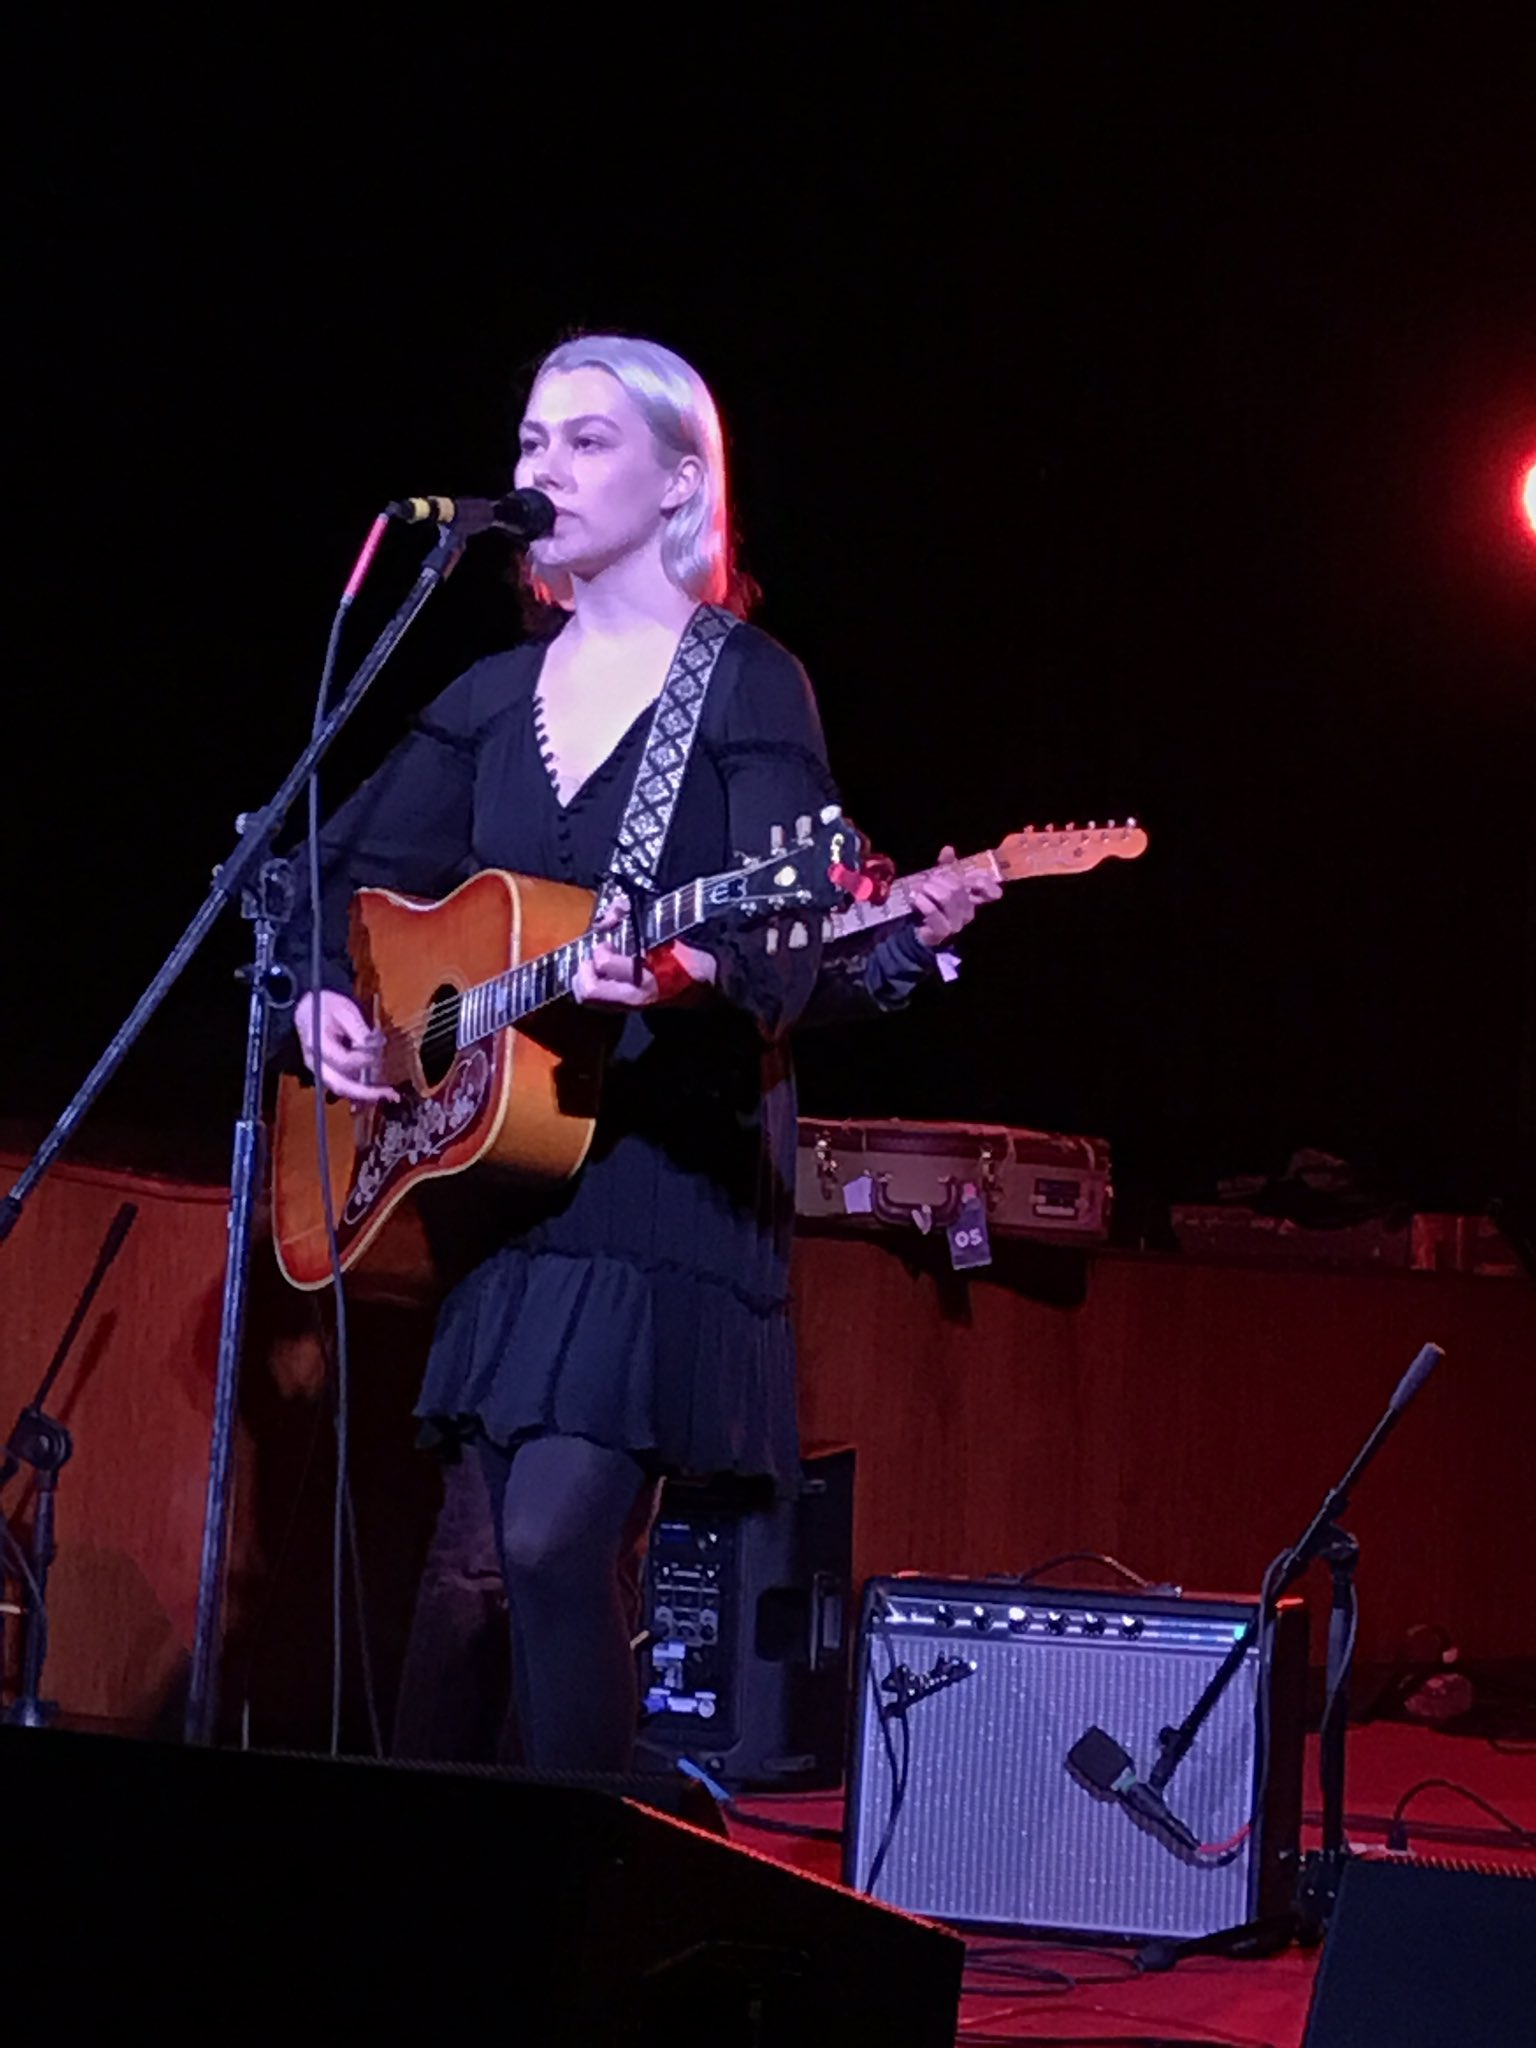 If you didn't cry at least once during @phoebe_bridgers you're a freakin' monster. #SXSW https://t.co/eBkC7wKALz